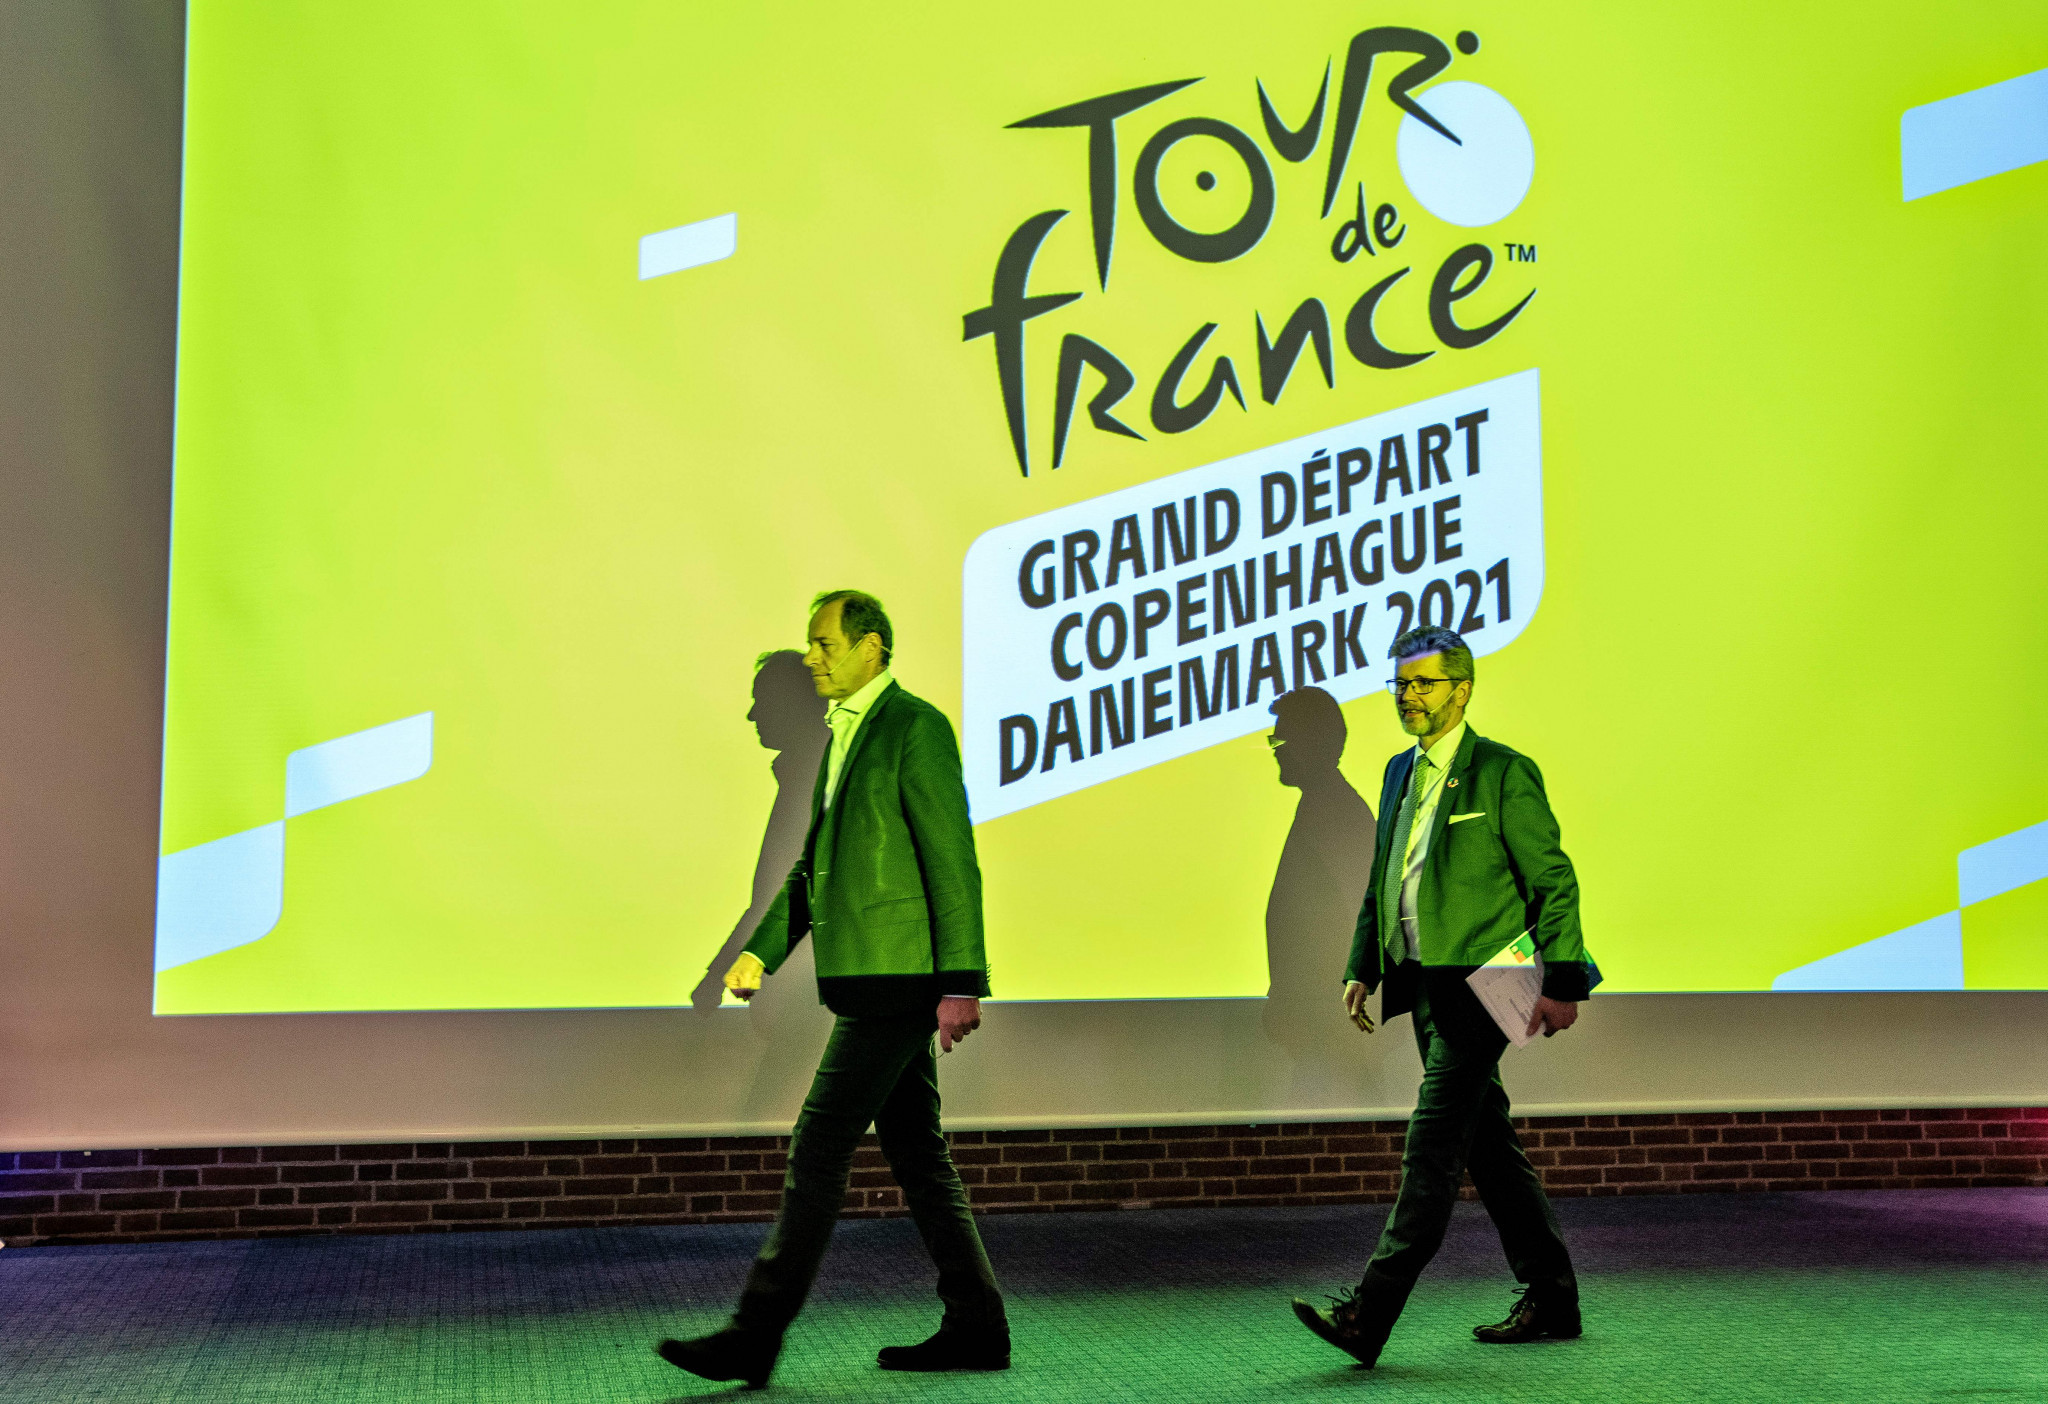 Tour de France organisers ask to move 2021 Grand Depart to avoid Tokyo 2020 clash